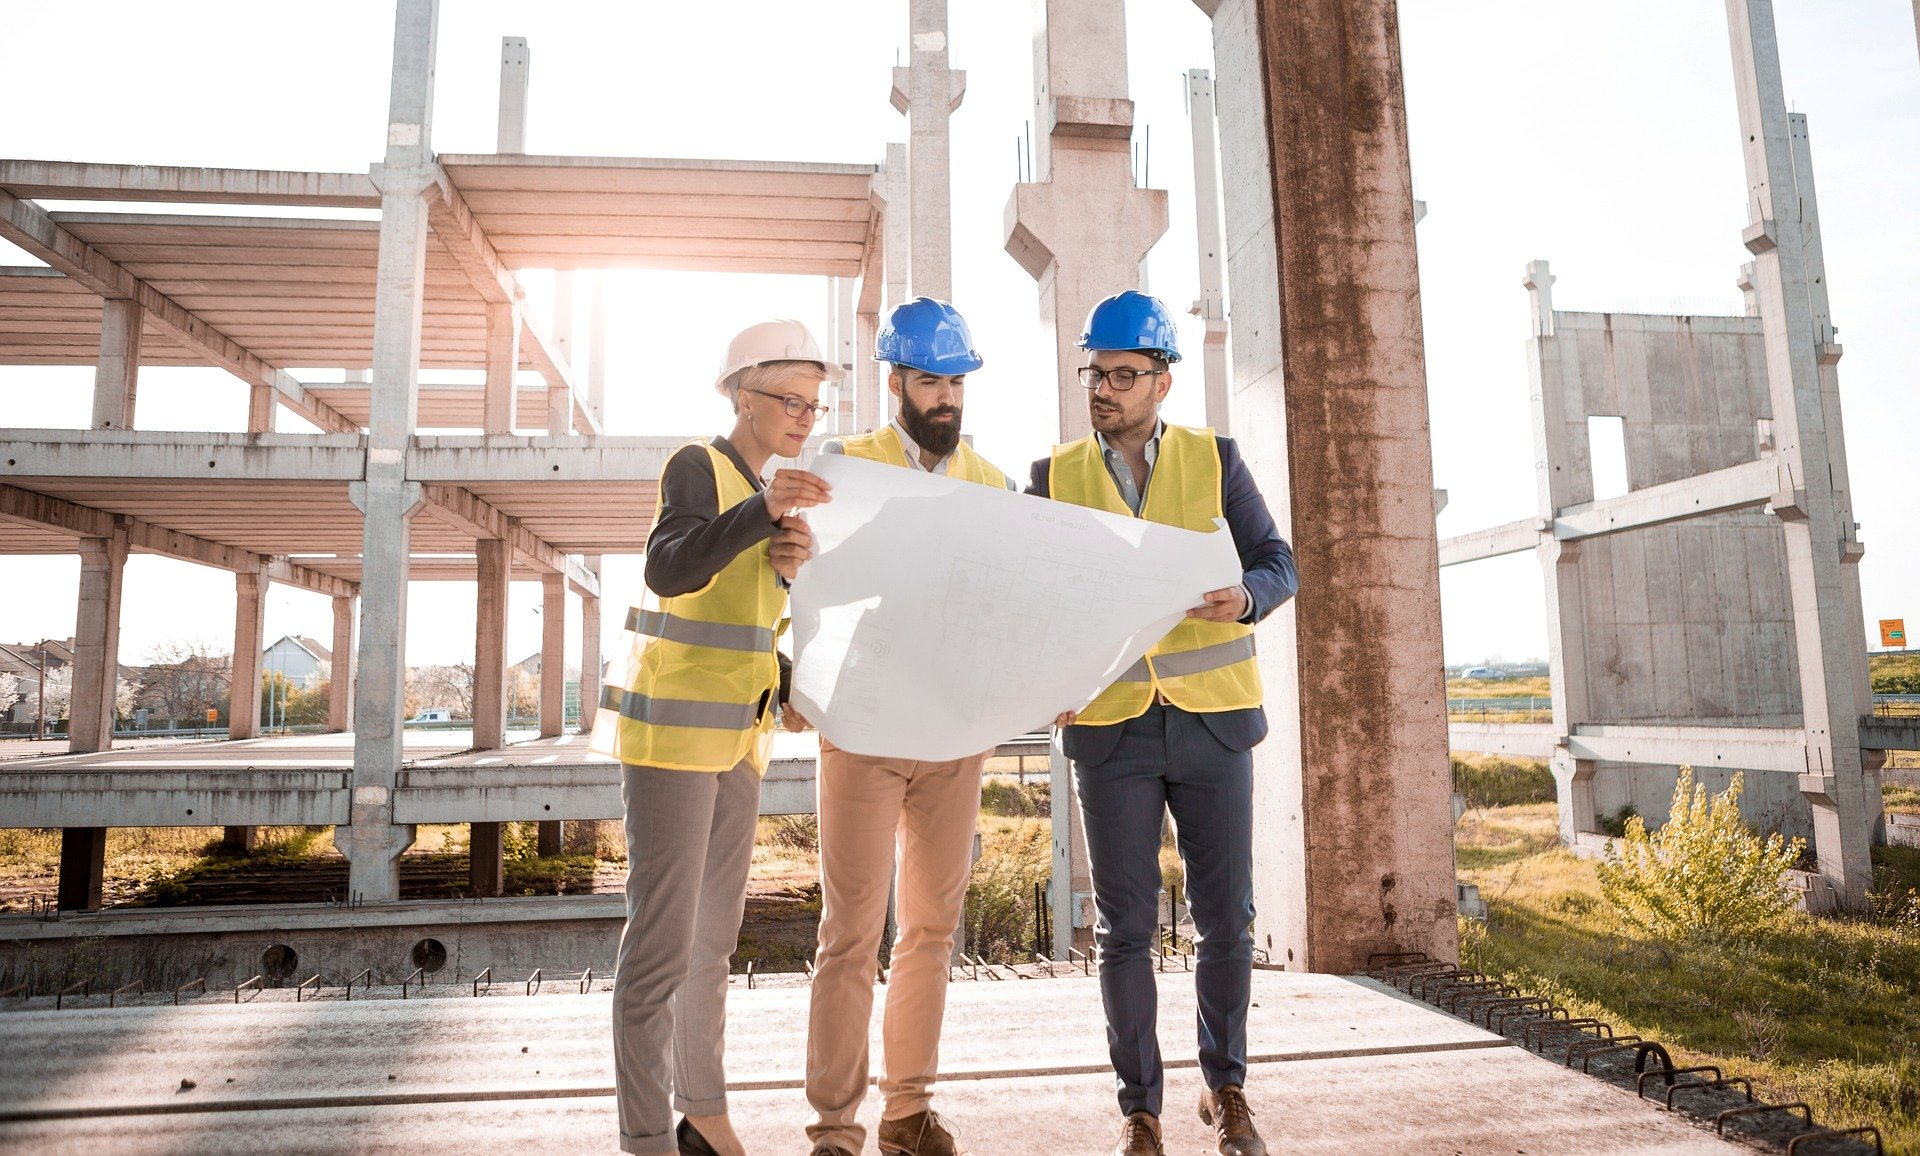 Why should you hire construction firms for your local projects